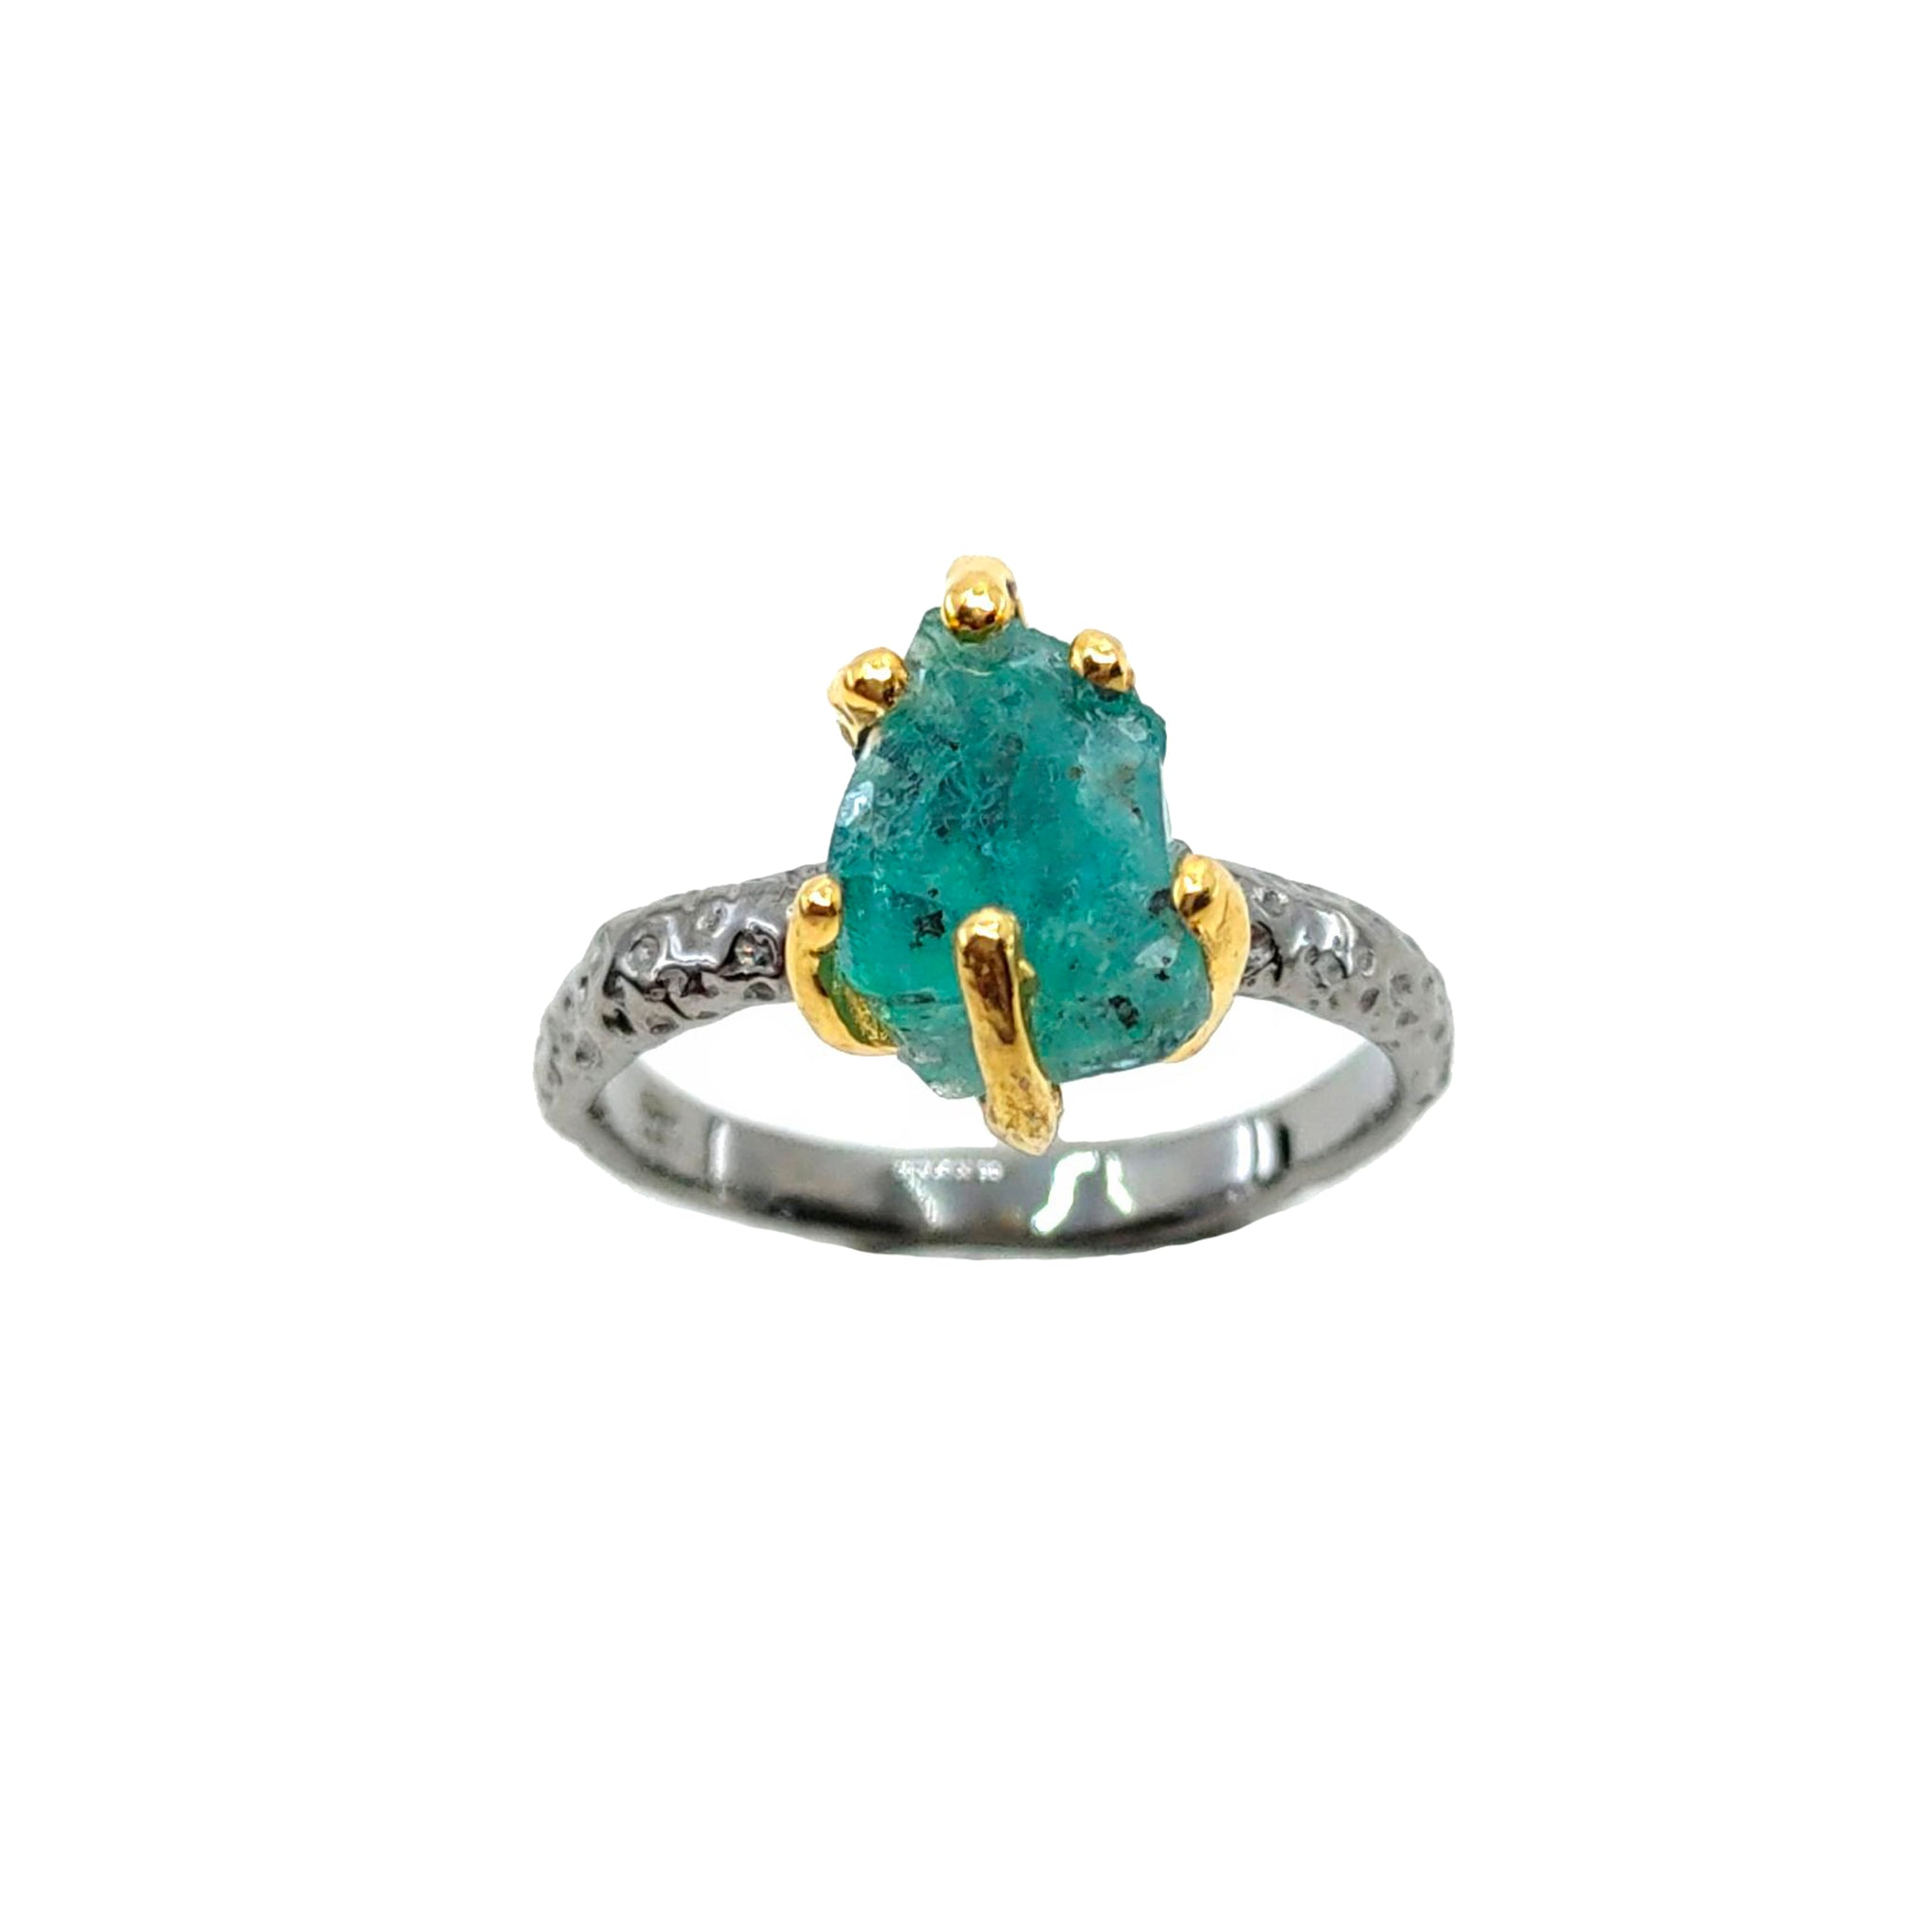 Rough Stone - 925 Sterling Silver Ring, Rough Faceted Emerald, Plated with 3 Micron 22K Yellow Gold and Grey Ruthenium